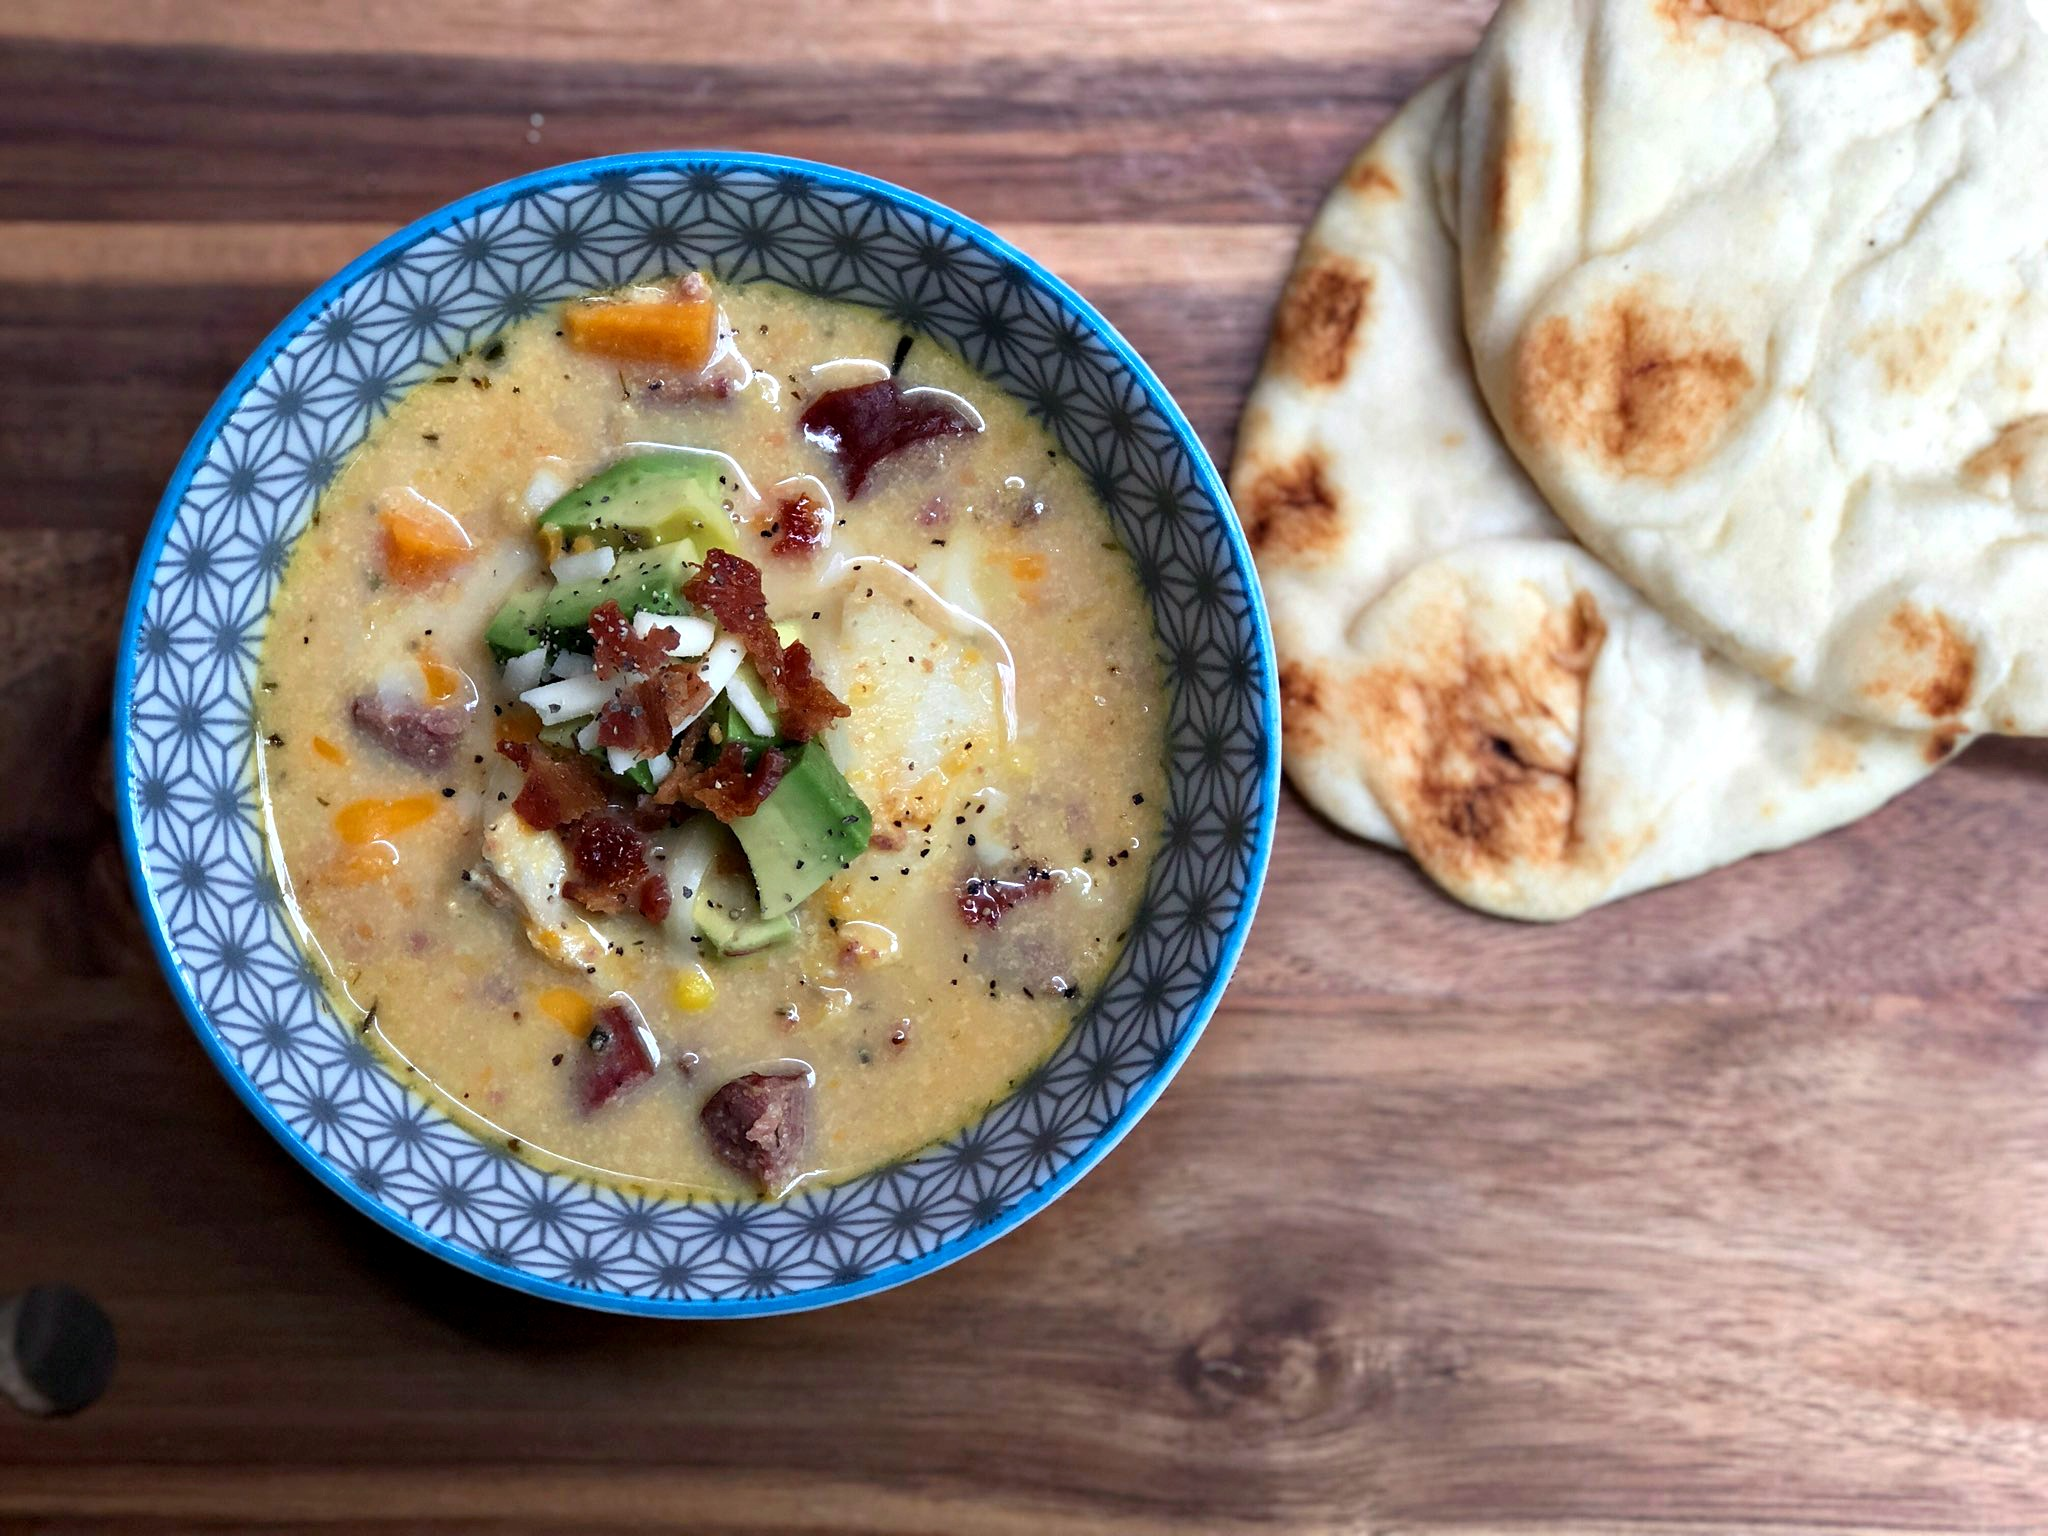 """""""This is a lighter scallop and tilapia chowder that's loaded with veggies (sweet potatoes, corn, bell peppers),"""" says Diana71. """"It still has the rich and creamy textures, but is healthier given the lack of heavy cream and the use of sweet potatoes."""""""